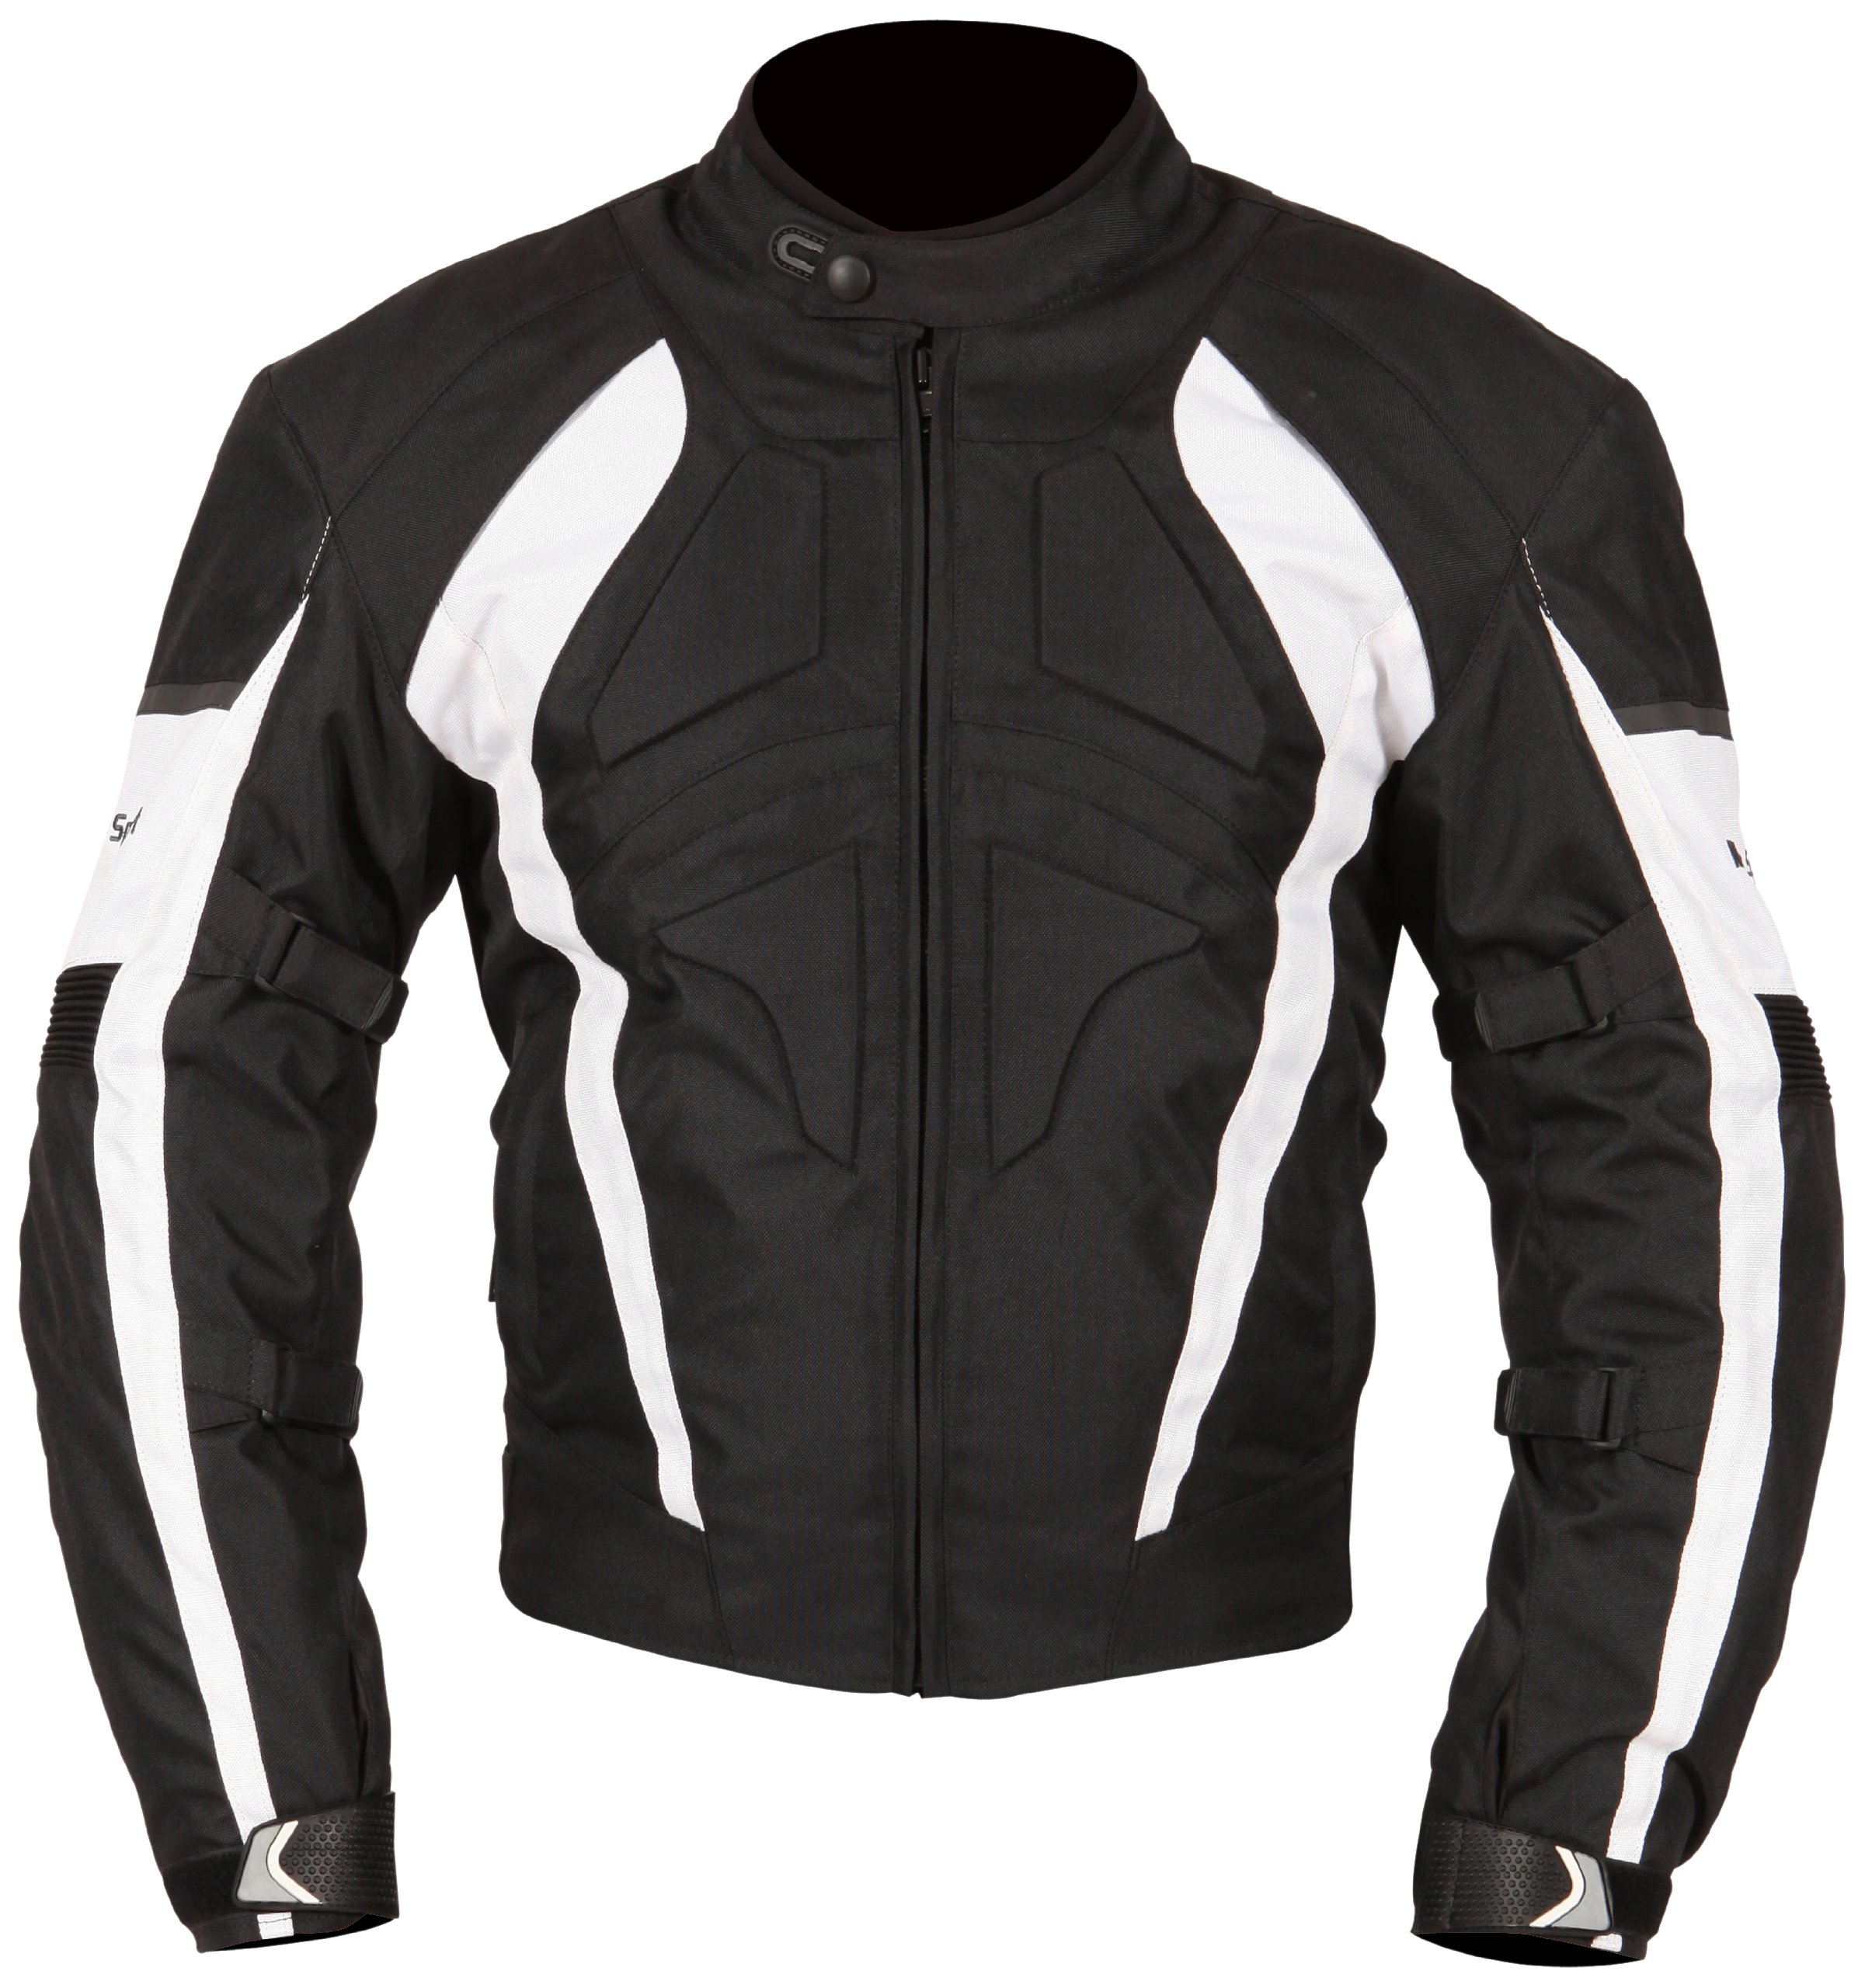 Milano Sport Gamma Motorcycle Jacket with White Accent (Black, Small)